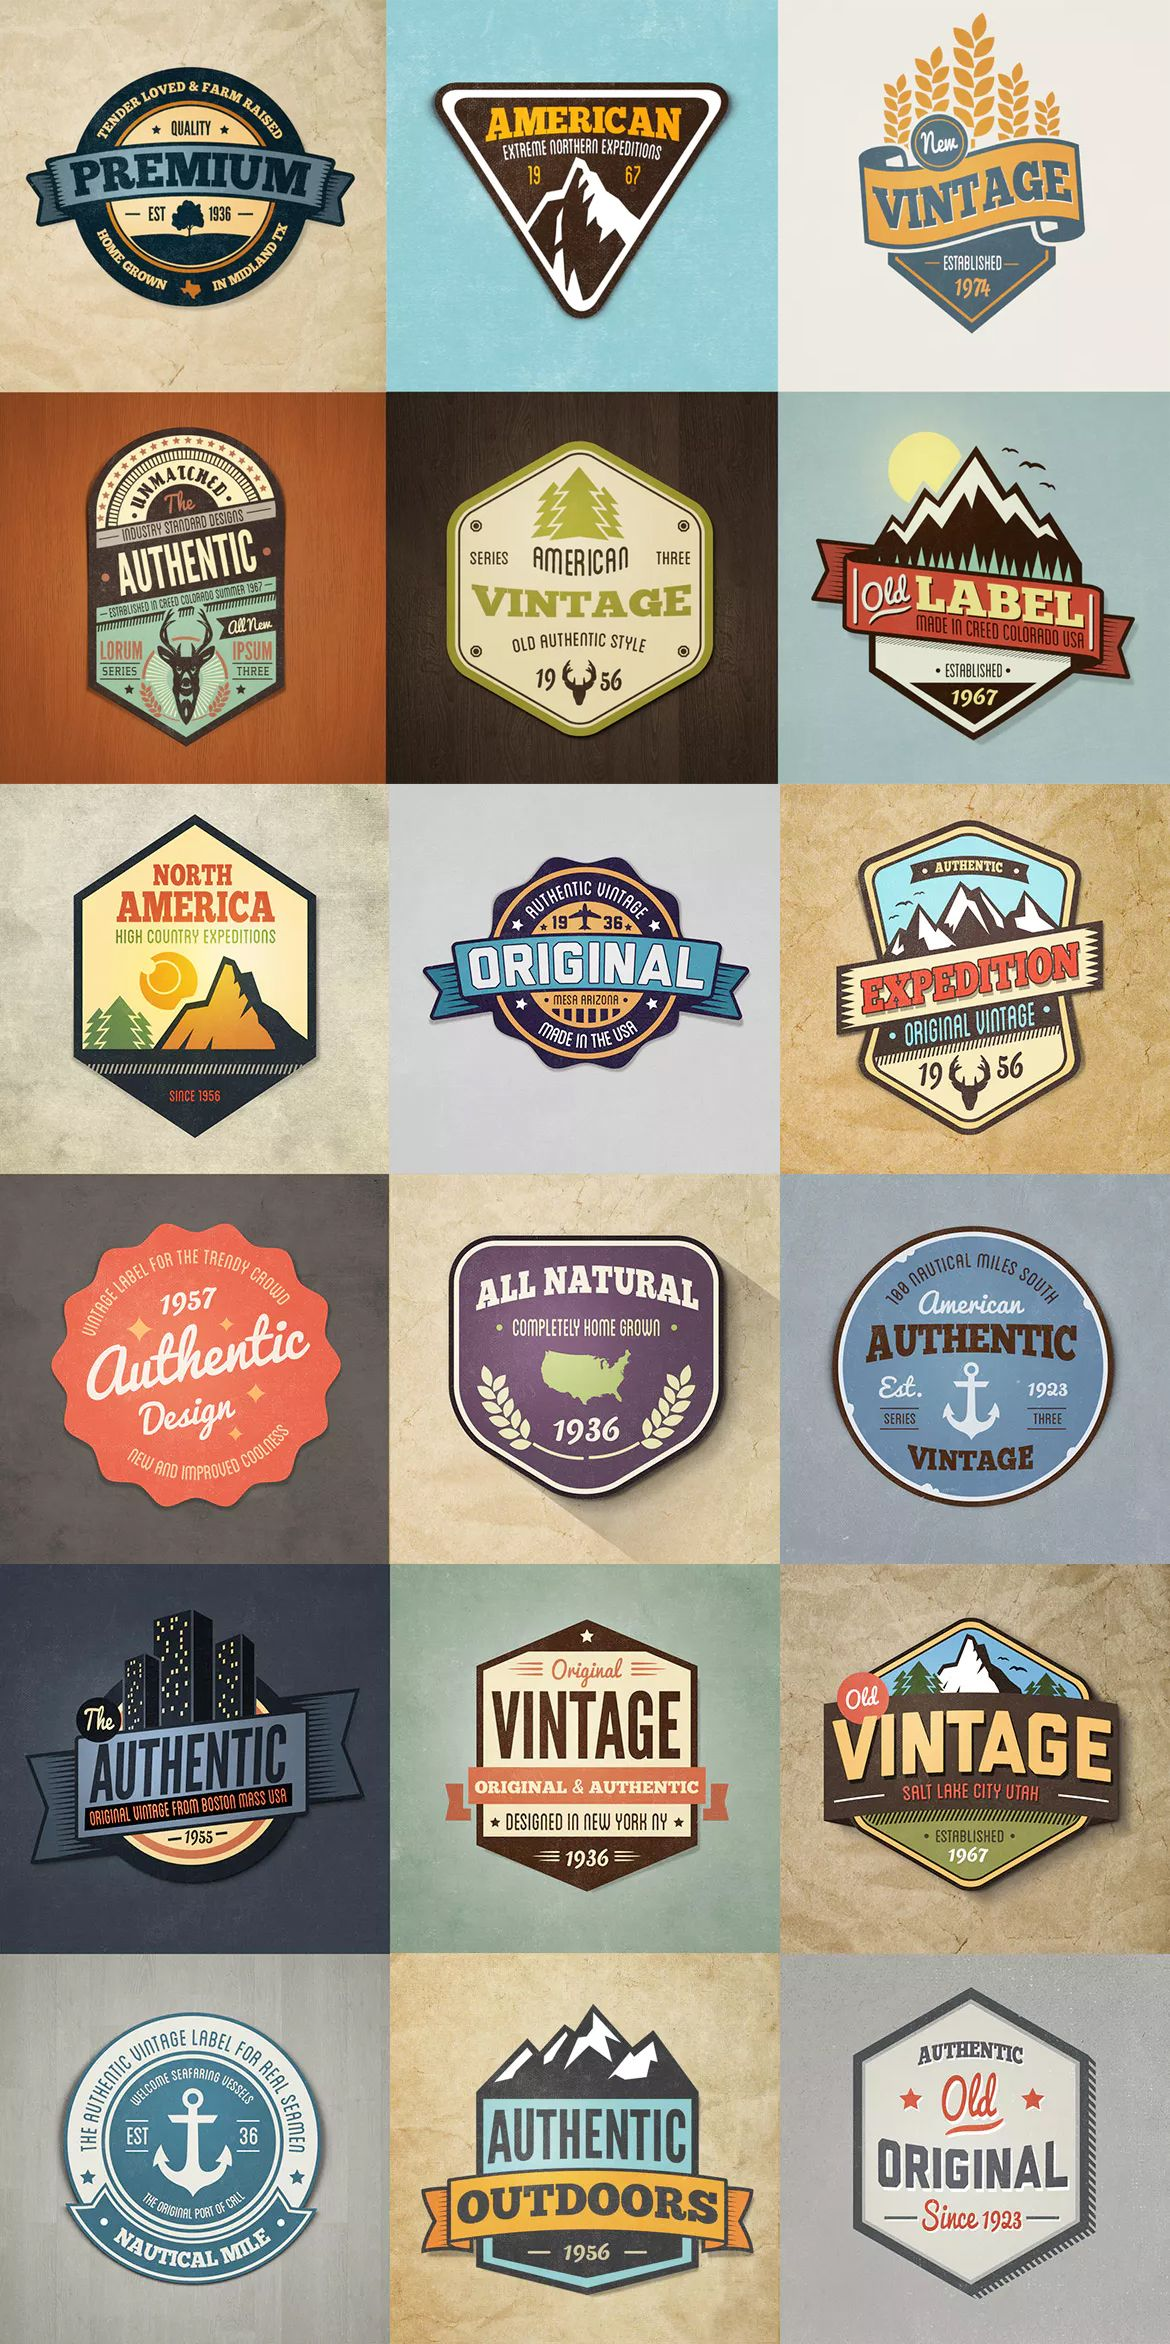 Vintage Style Badges And Logos Colored By Graphicmonkee On Envato Elements Logo Templates Psd Logo Color Logo Templates